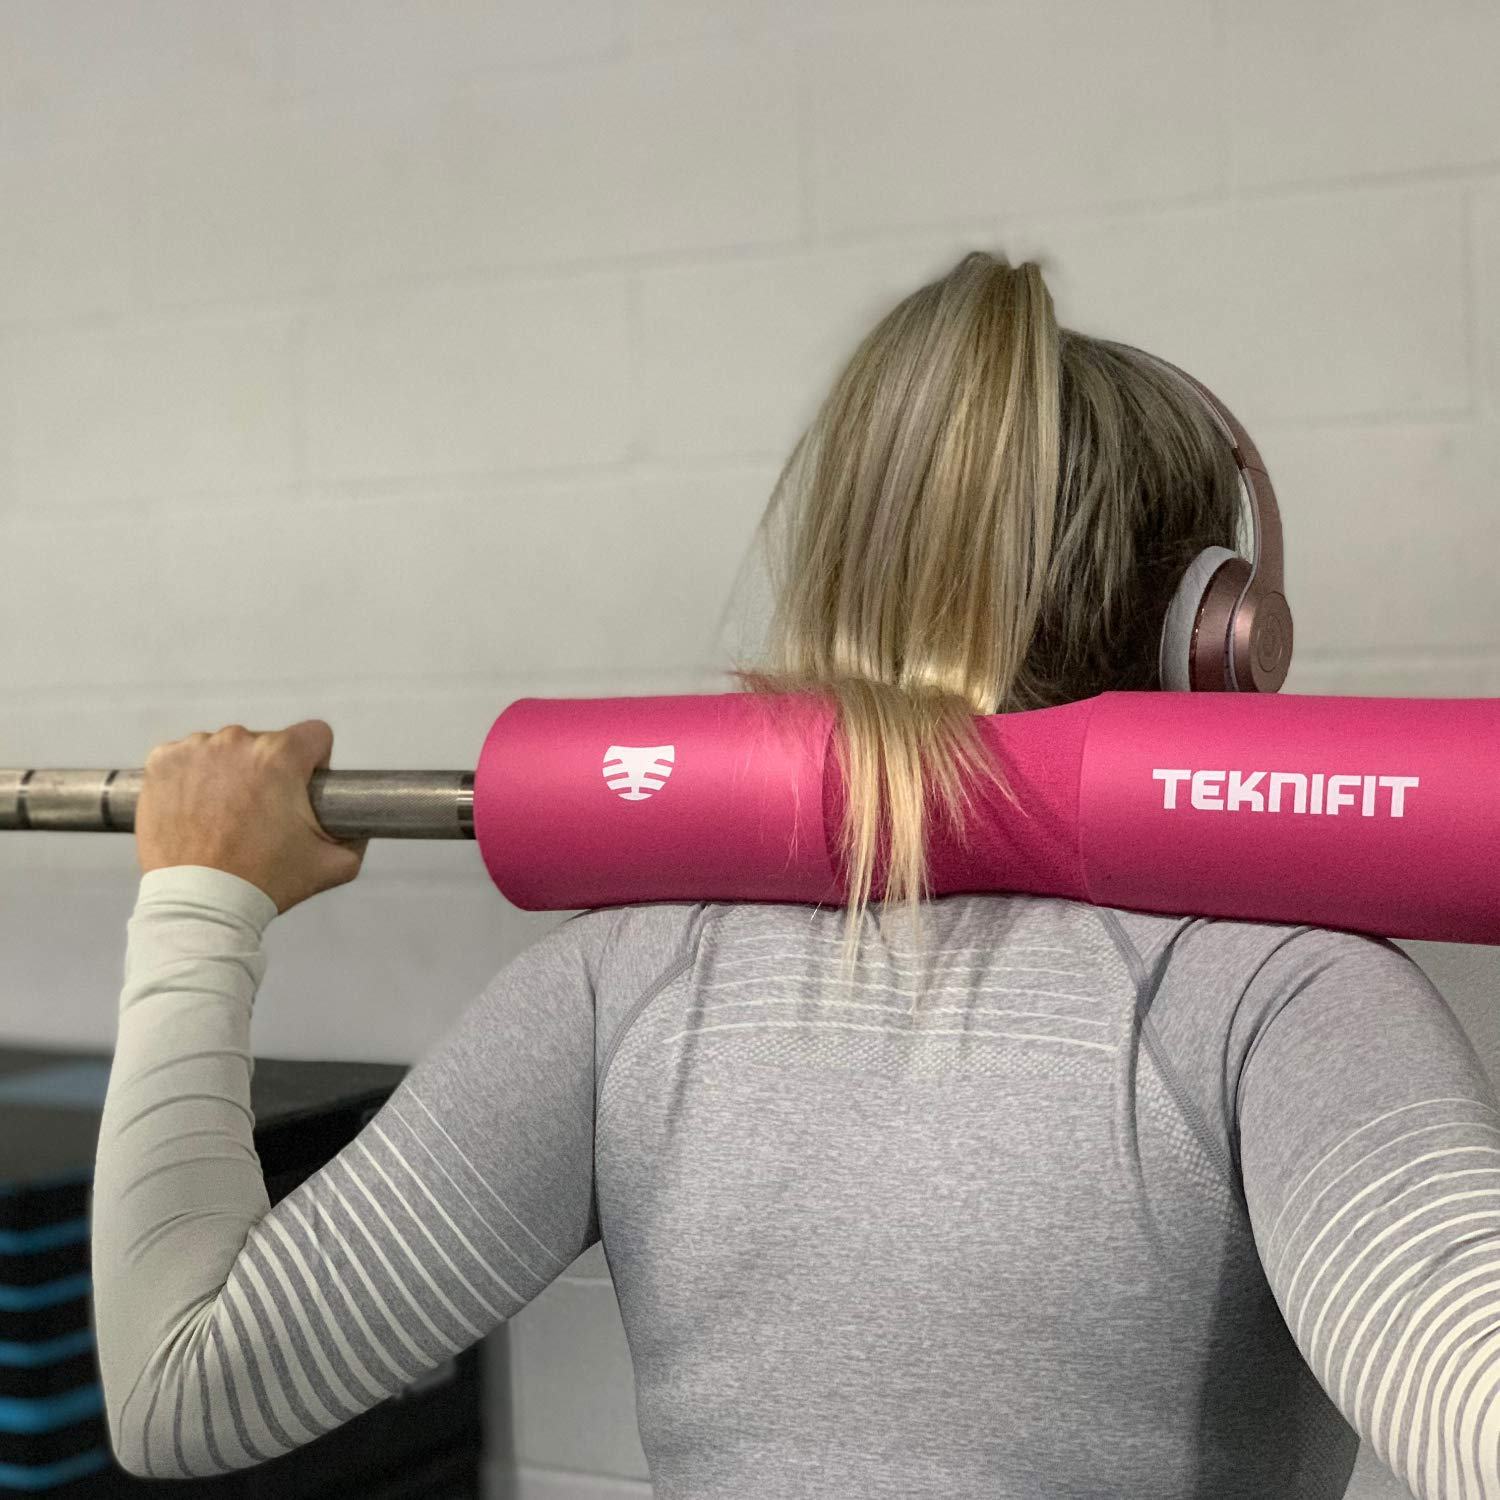 Enjoy Weightlifting Teknifit Barbell Squat Pad Fits Olympic Bars Perfectly Lunges Hip Thrust Exercises Comfortable /& Protective High Density Foam Pad for Neck and Shoulders